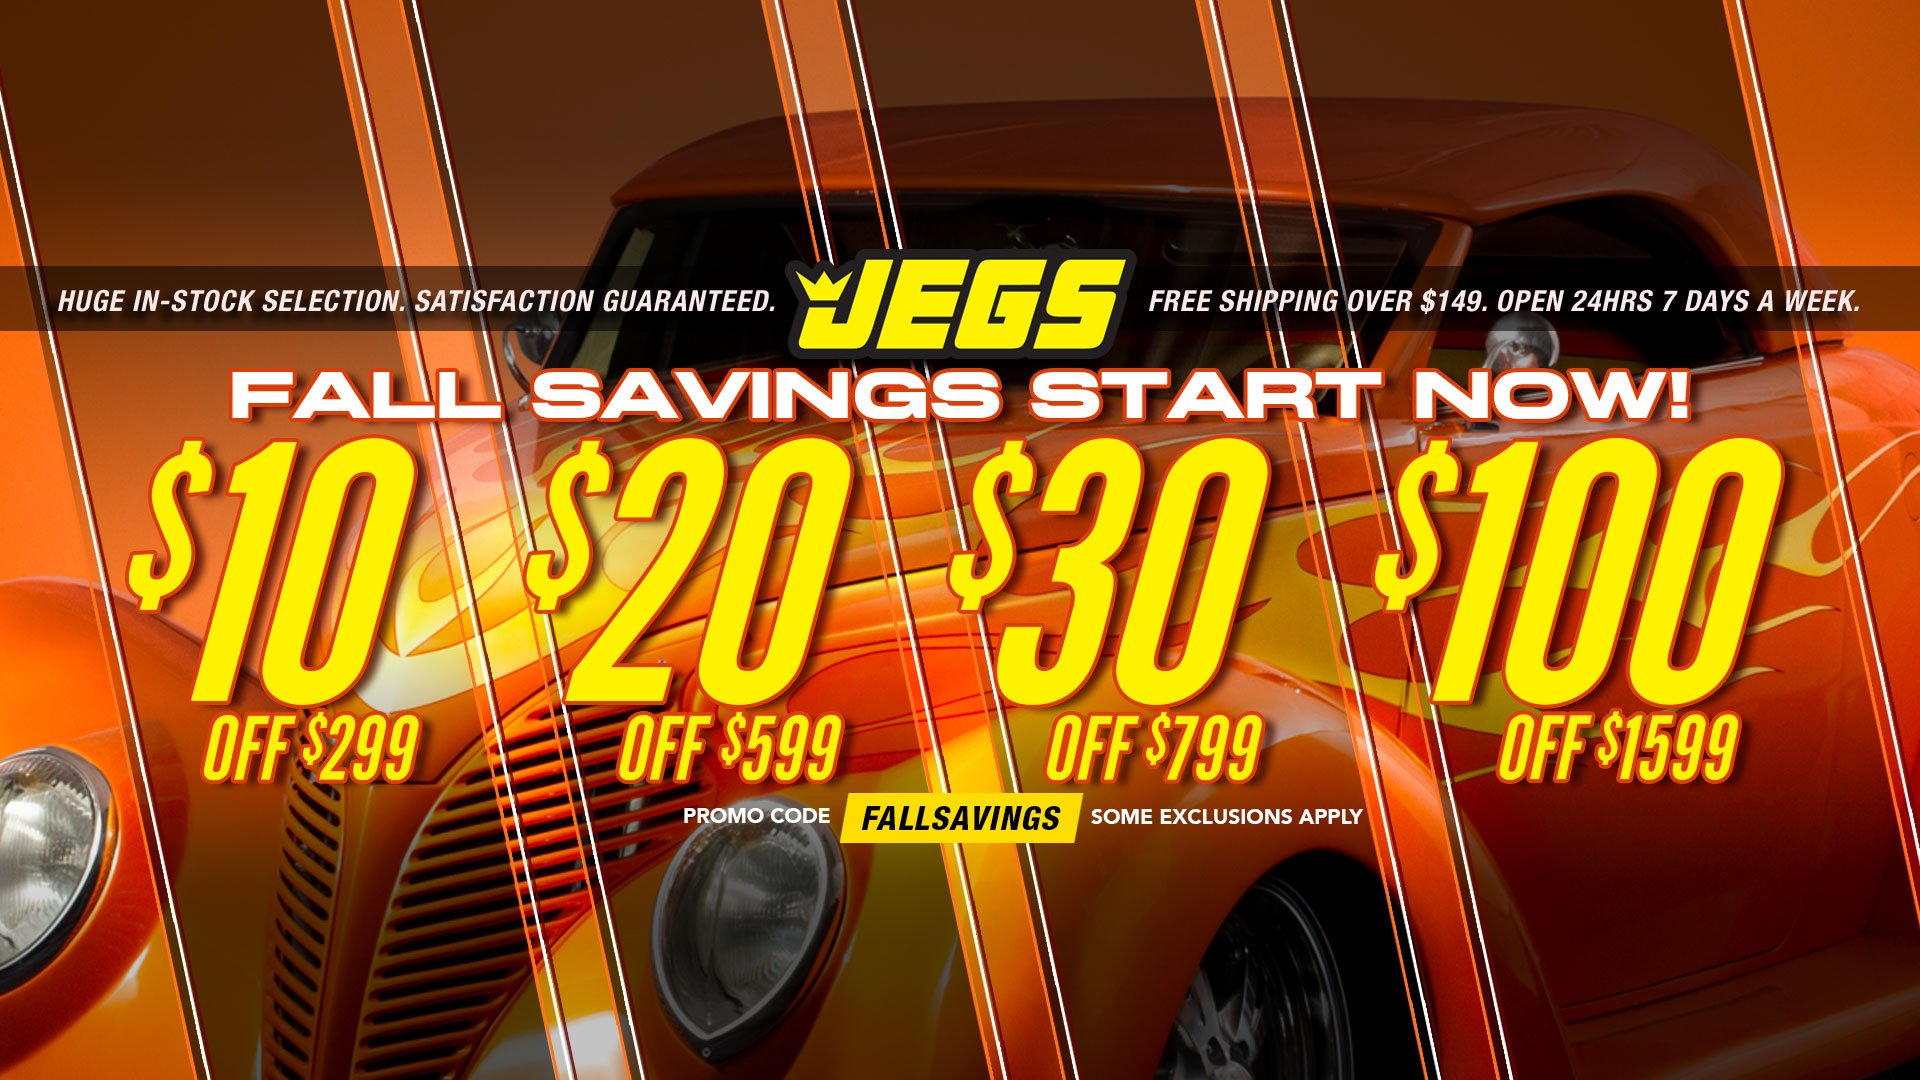 Save $10 off $299, $20 off $599, $30 off $799, $100 off $1,599 - Promo Code FALLSAVINGS